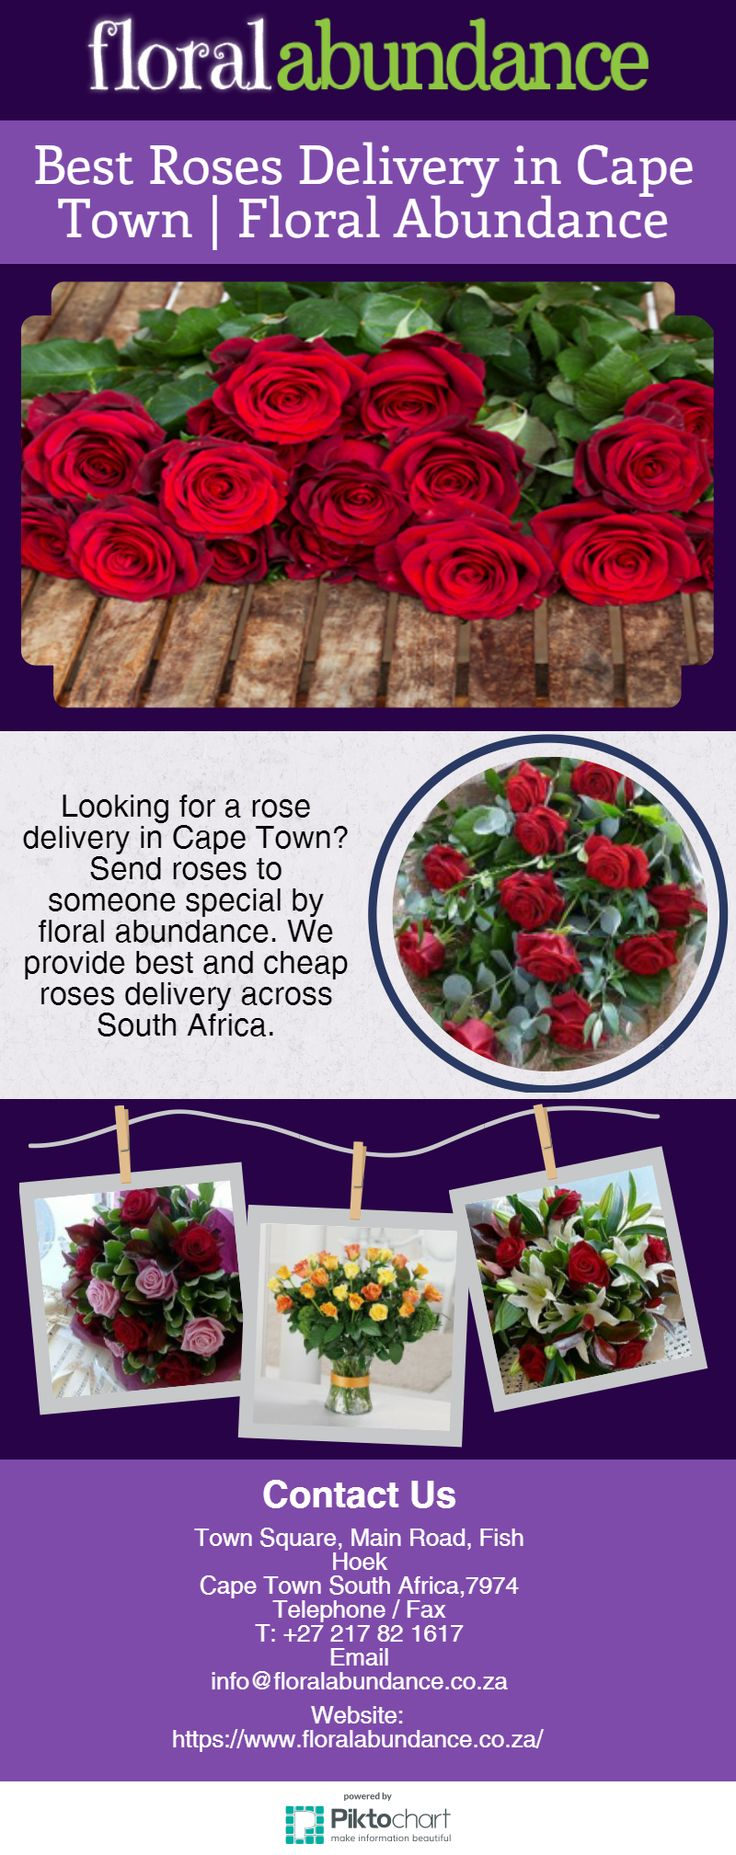 Best Roses Delivery in Cape Town | Floral Abundance  Looking for a rose delivery in Cape Town? Send roses to someone special by floral abundance. We provide best and cheap roses delivery across South Africa. Visit at https://magic.piktochart.com/output/22022870-best-roses-delivery-in-cape-town-floral-abundance